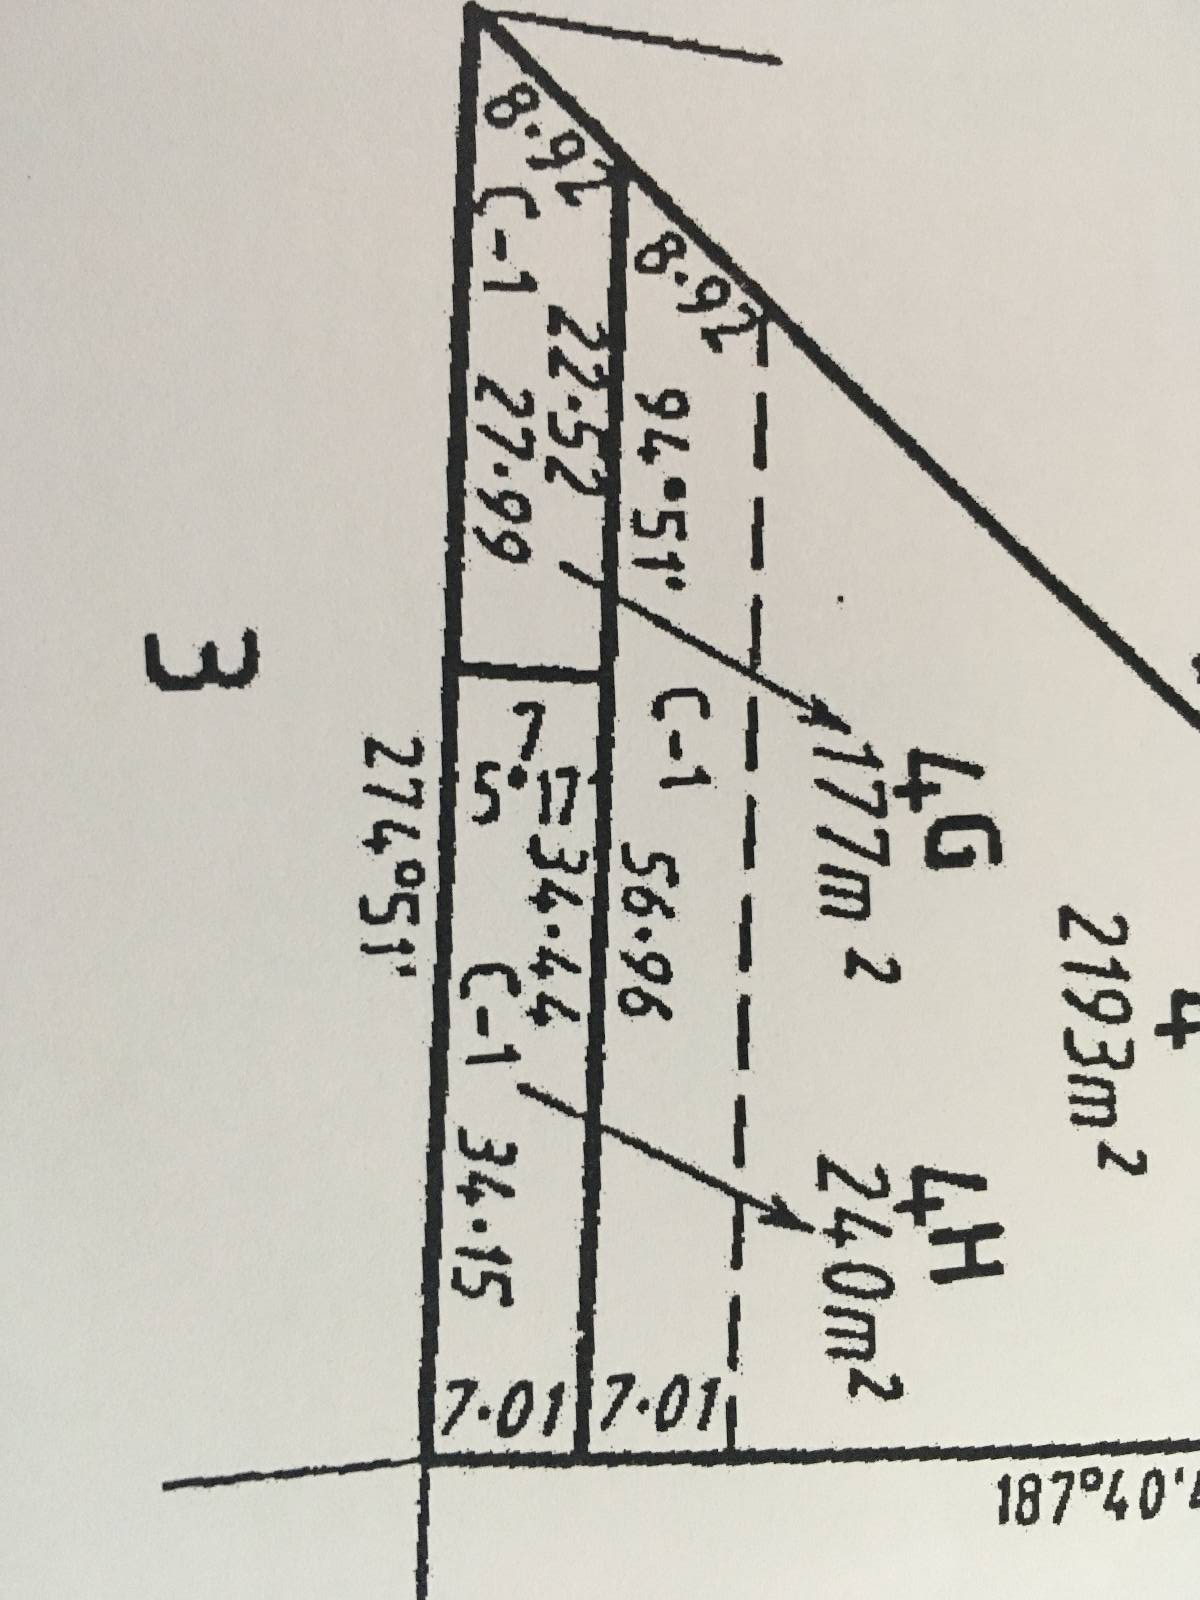 Help on Land Title for Pool